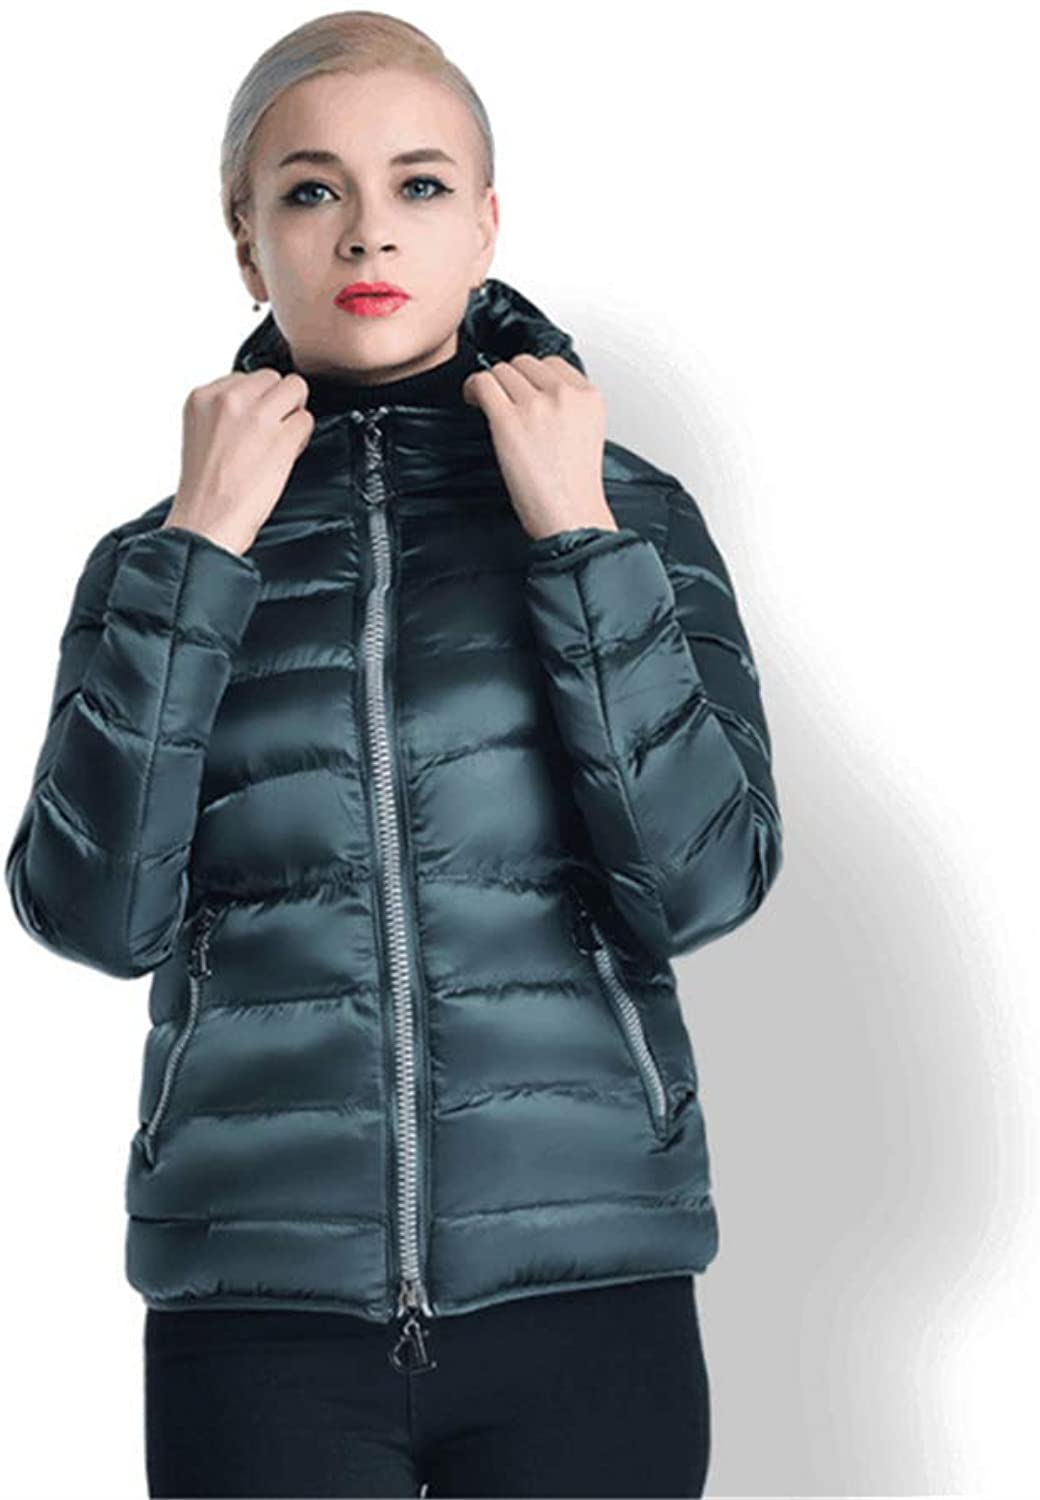 Fashion Short Paragraph Women's Winter Down Jacket with Hood,XL